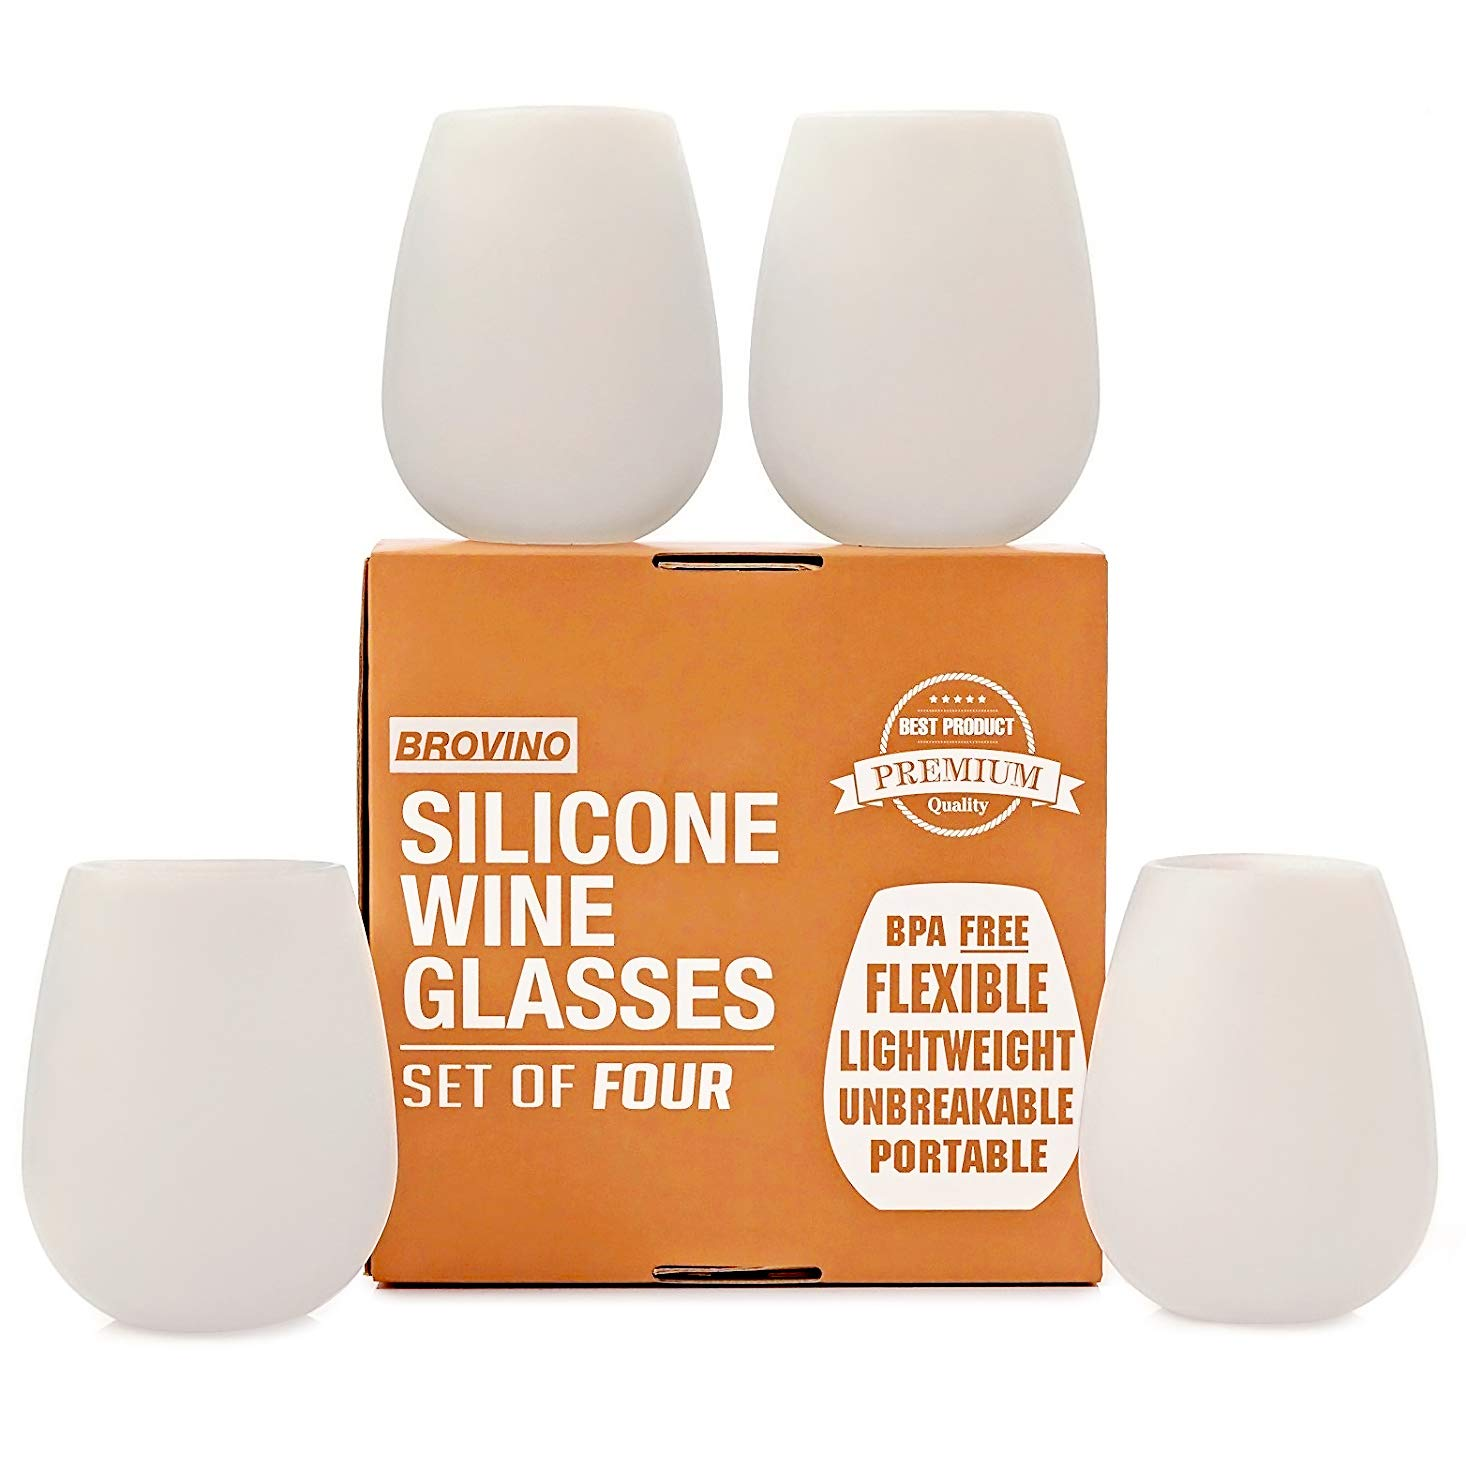 Silicone Wine Glasses - Set of 4 - Unbreakable Outdoor Rubber Wine Cups: 14 oz, Clear Silicone. 100% Dishwasher Safe - Shatterproof Glass for Travel, Outdoor, Picnic, Pool, Boat, Camping by Brovino (Image #1)